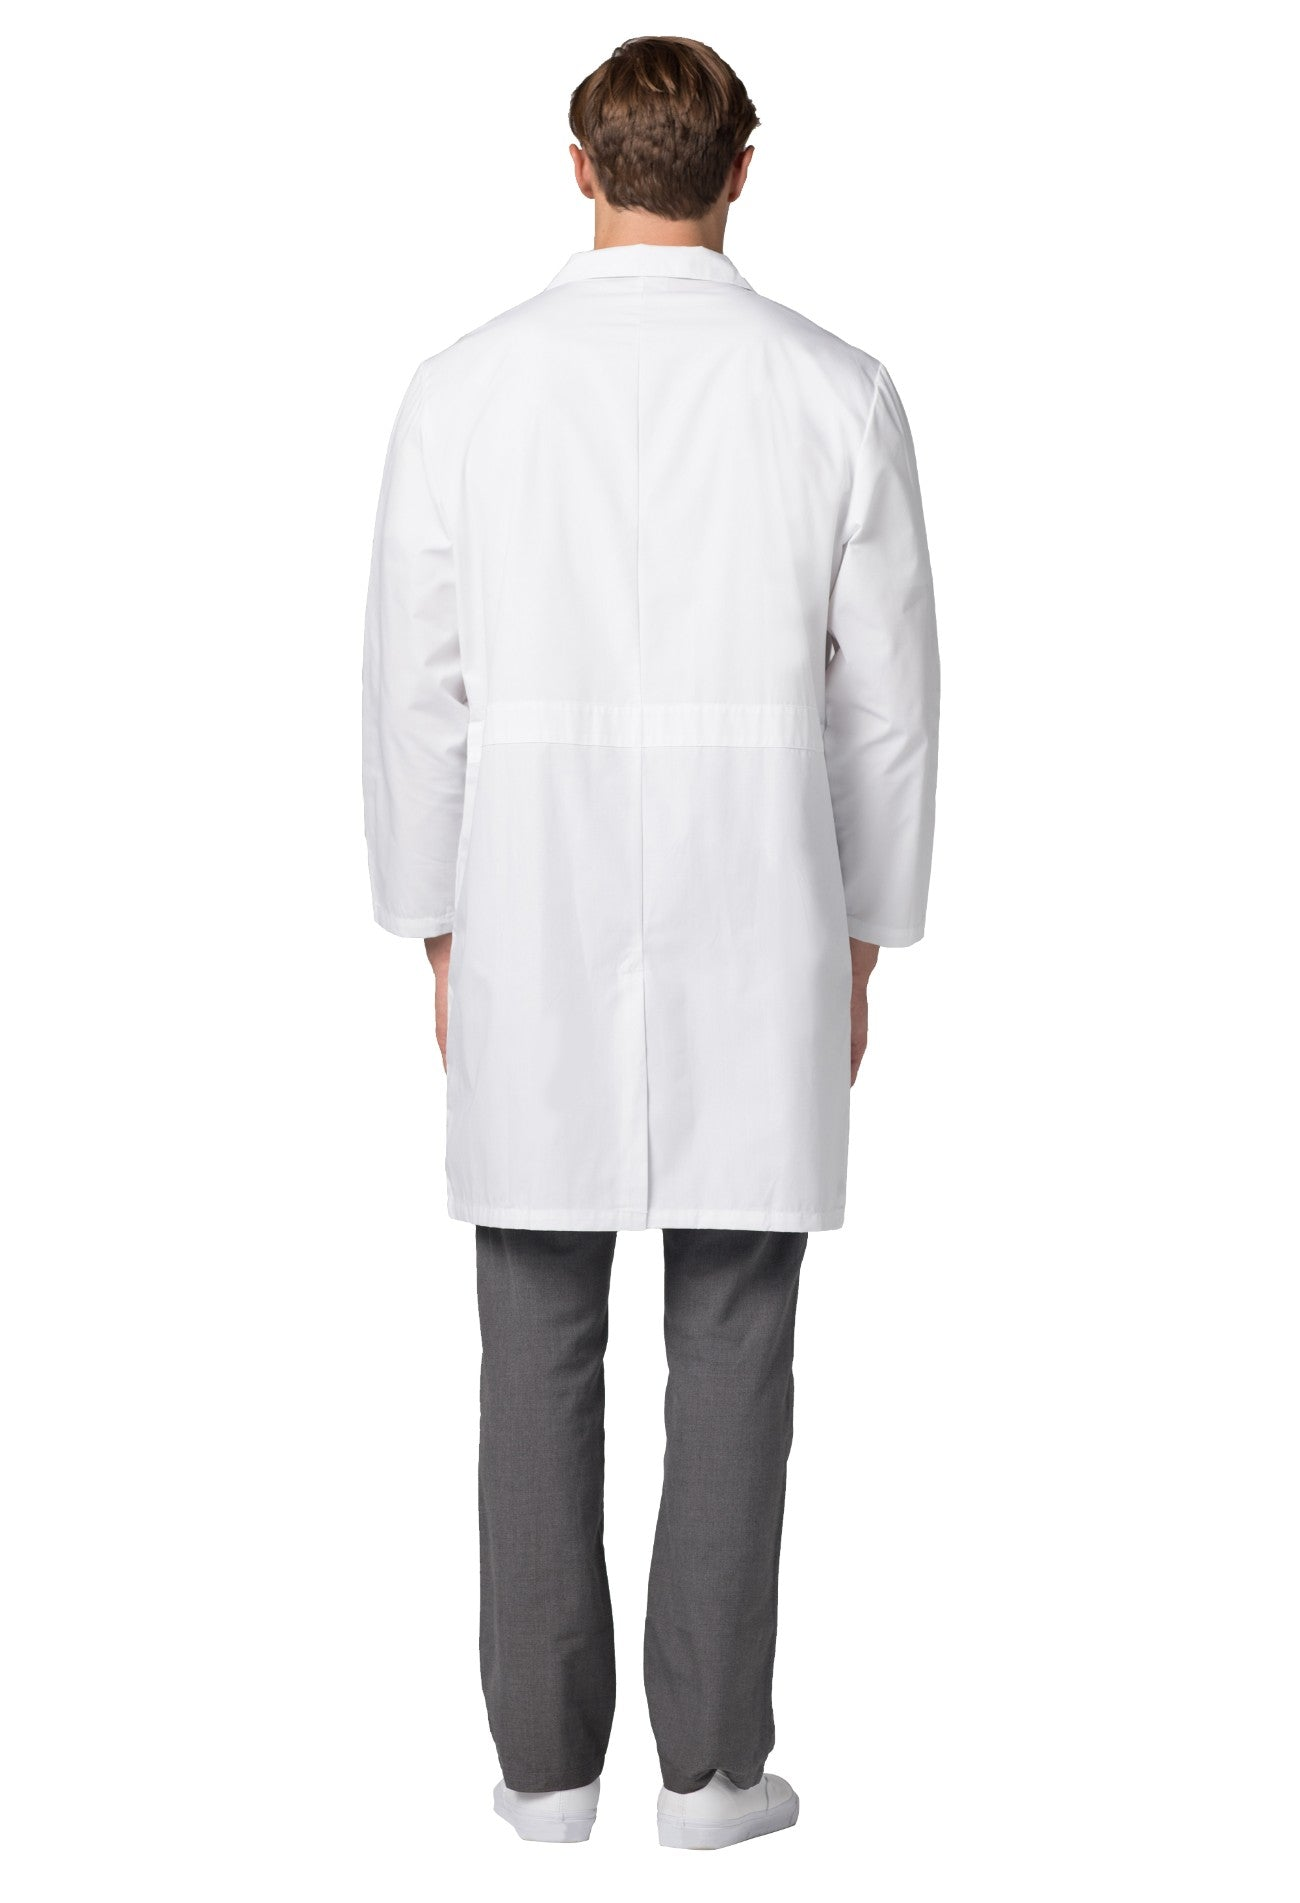 "Unisex 39"" Midriff Lab Coat 808"